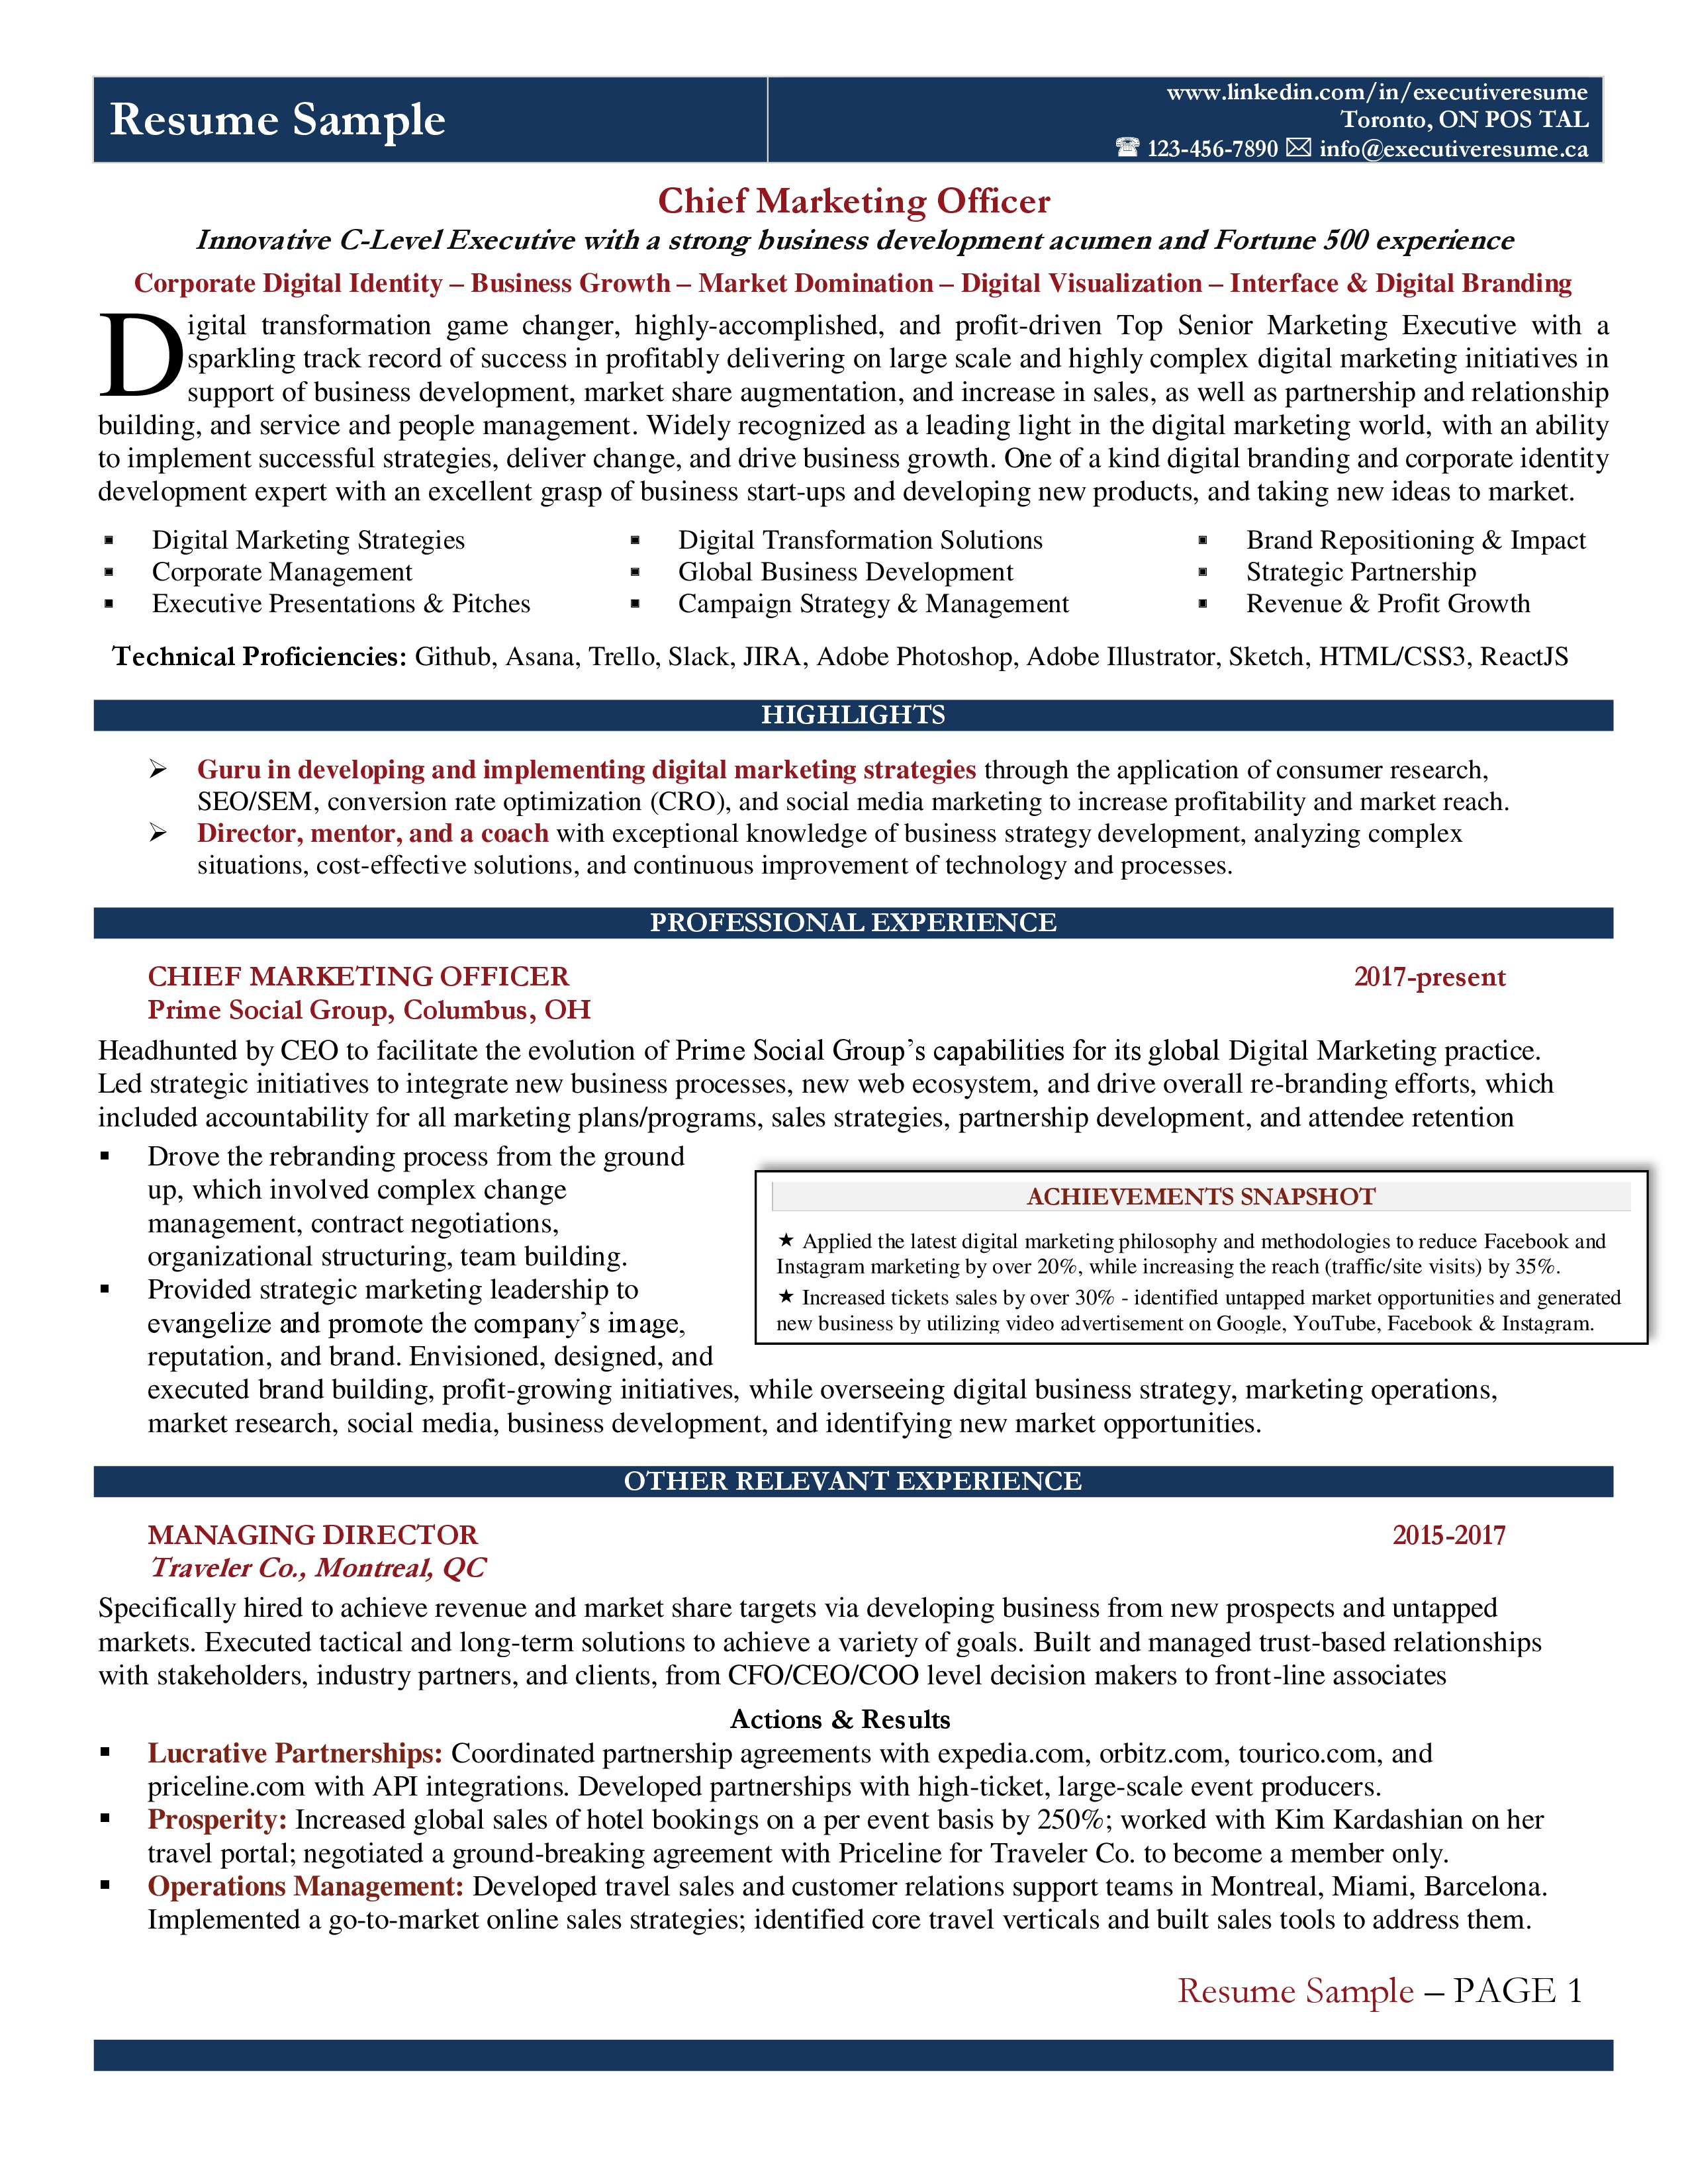 Resume Sample 2 Dec 2018-page-0 (1)